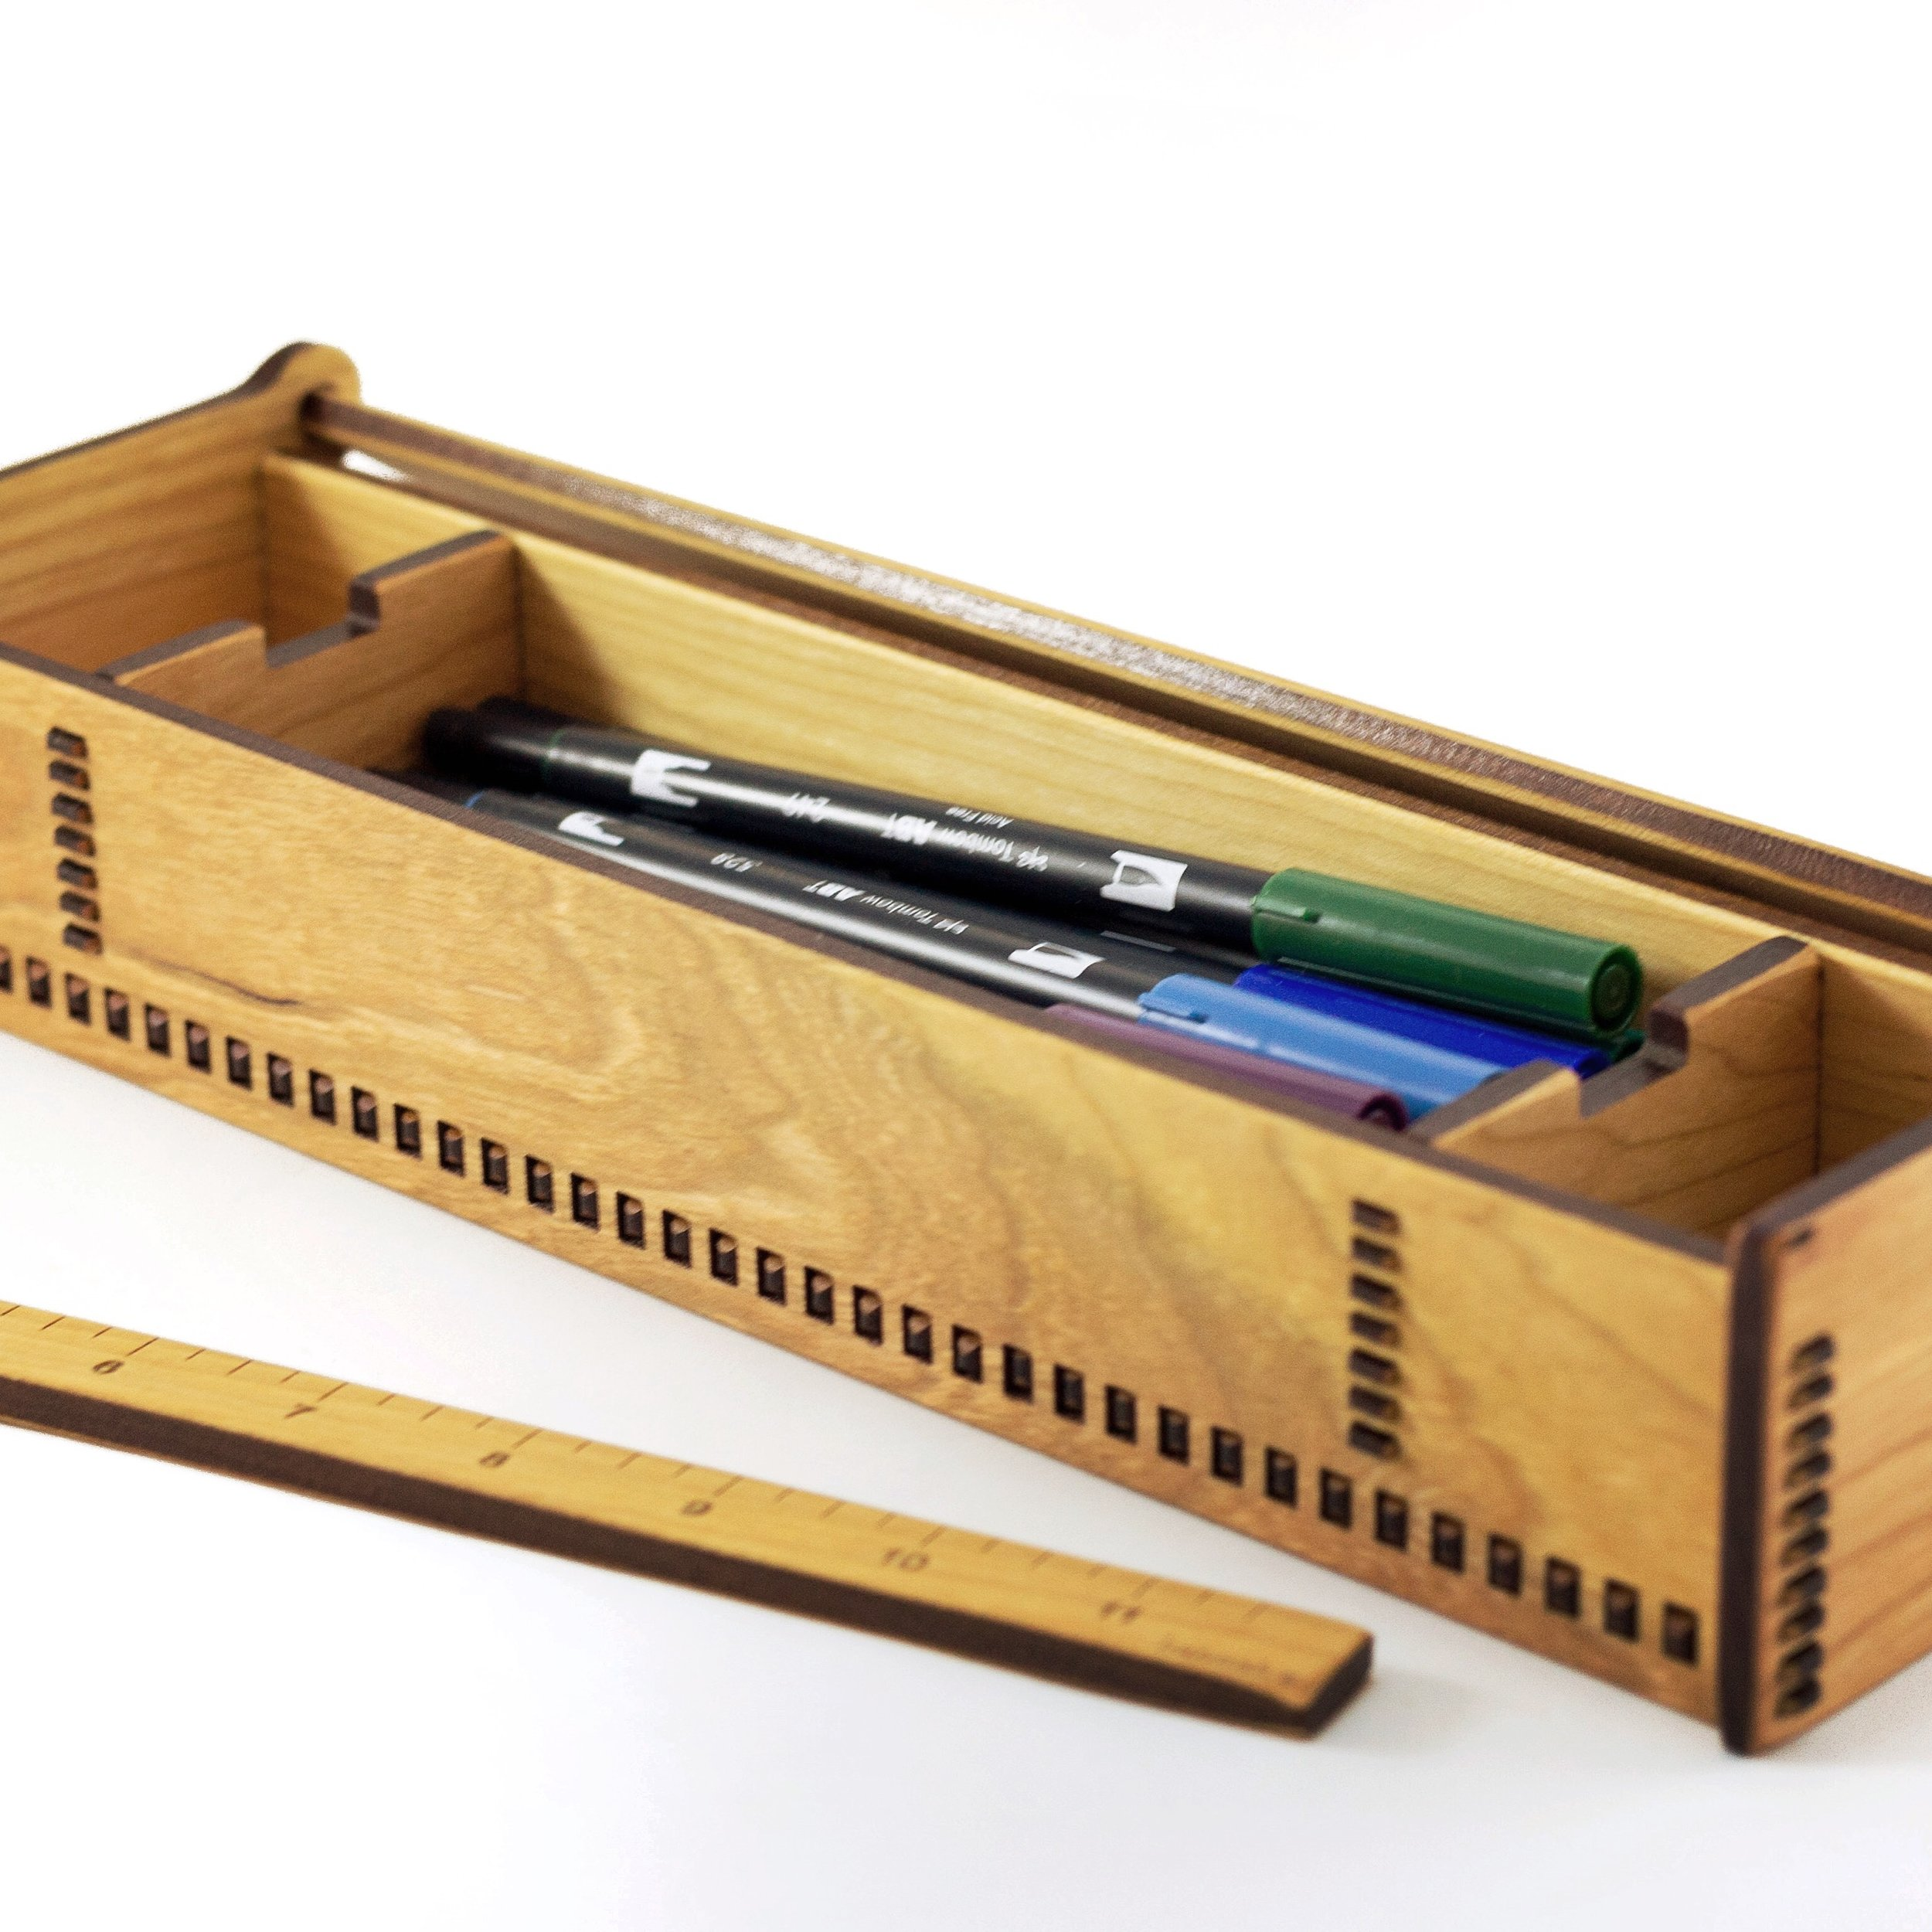 1. Ruler Box - The ruler box is designed to hold their most precious writing utensils, and the sticky notes, paper clips, or erasers they use most. Three compartments makes for easy organizing. This box is particularly useful for anyone (student or otherwise) who is enjoying the Bullet Journal trend!